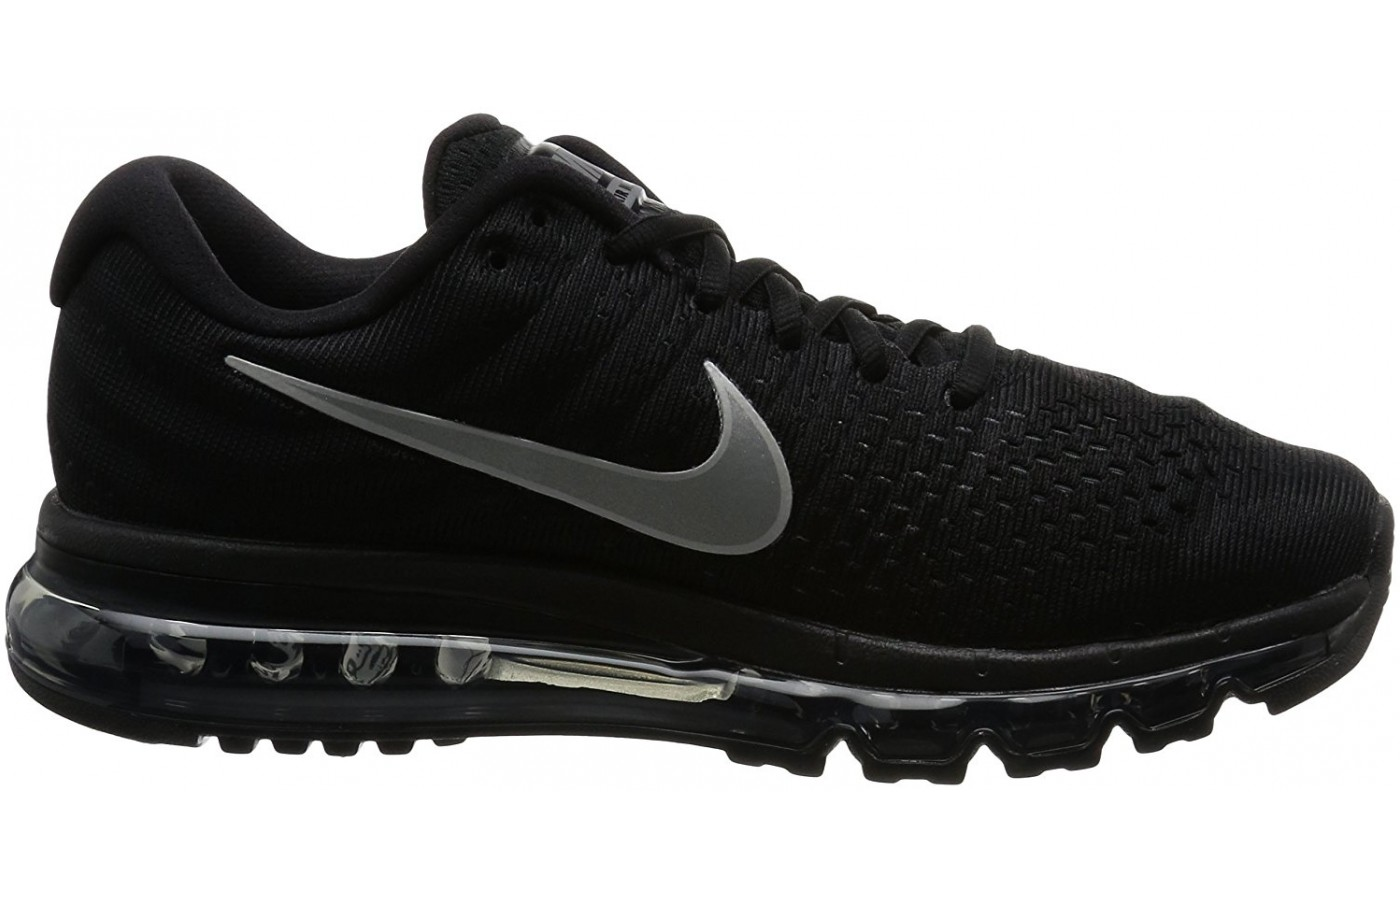 premium selection c92b6 f044a Nike Air Max 2019